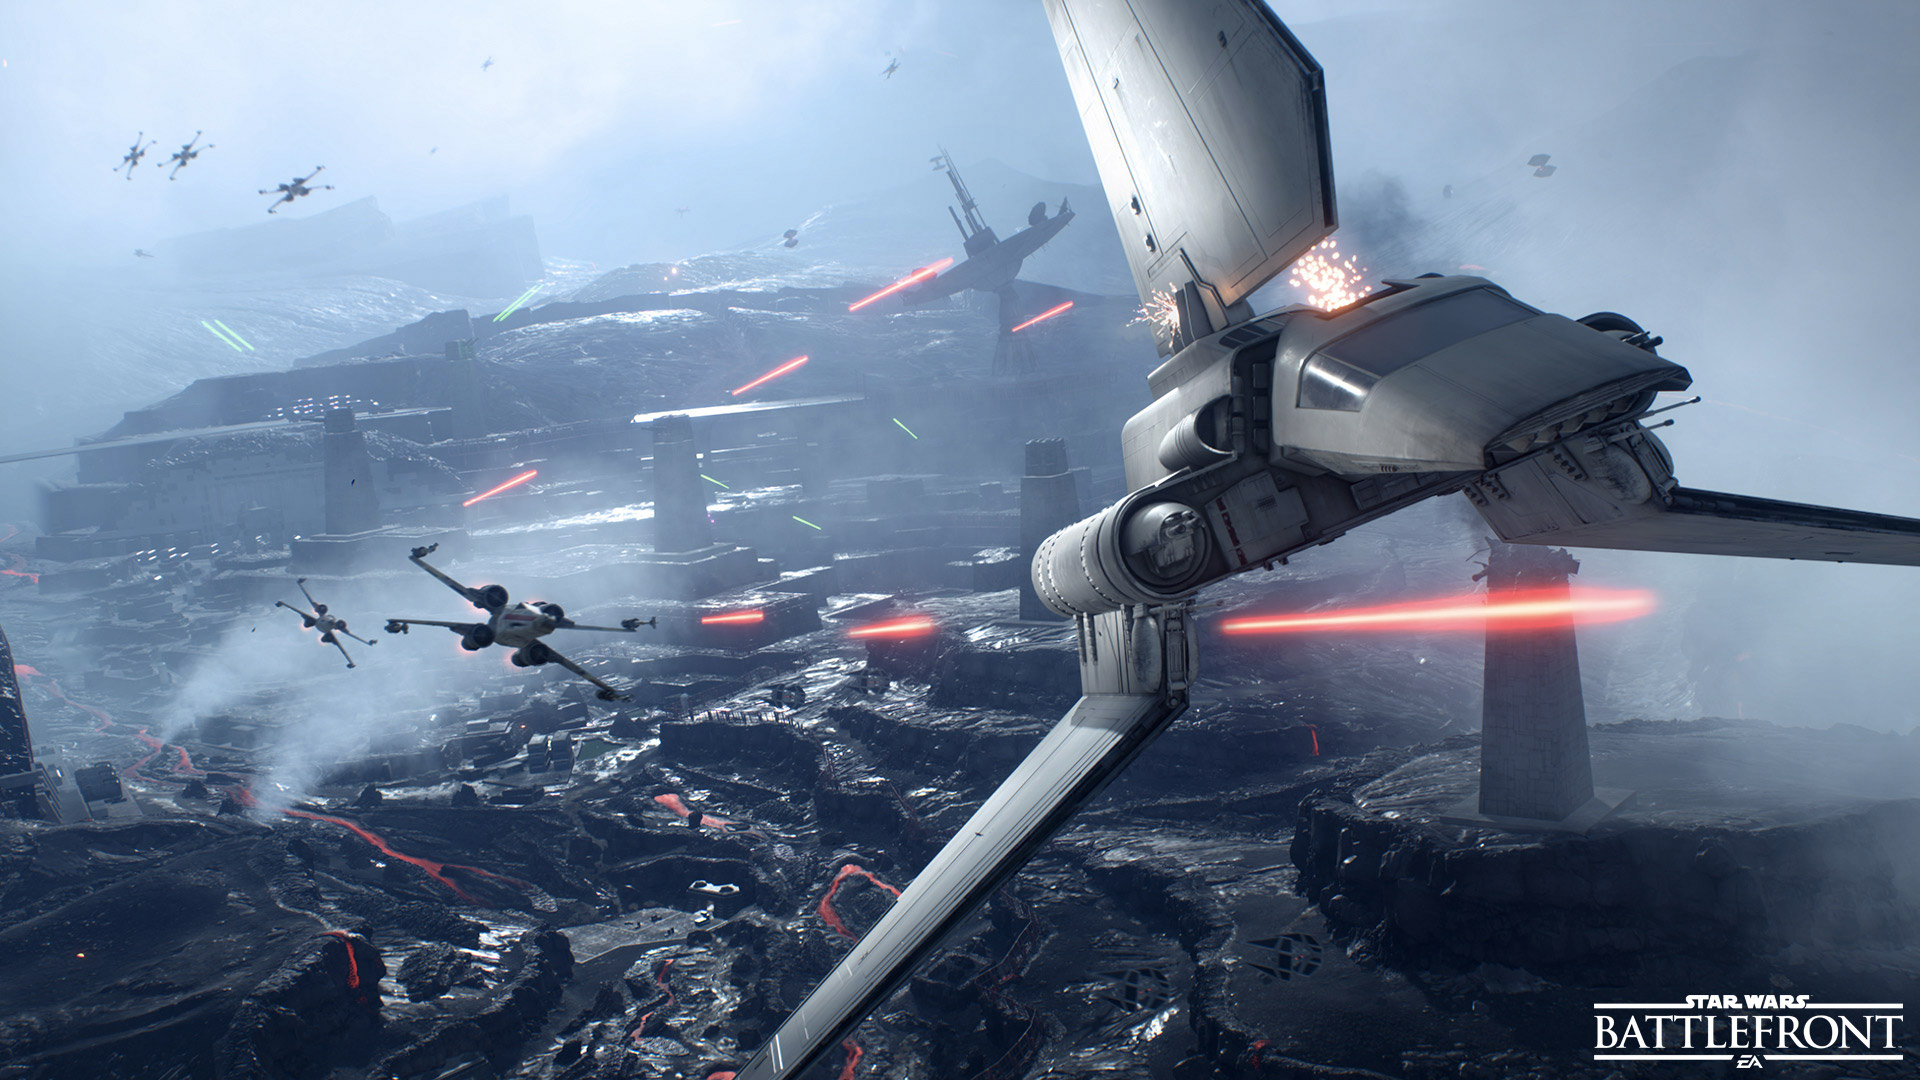 Star Wars Battlefront celebrates May the 4th with a free PC trial (Correction)